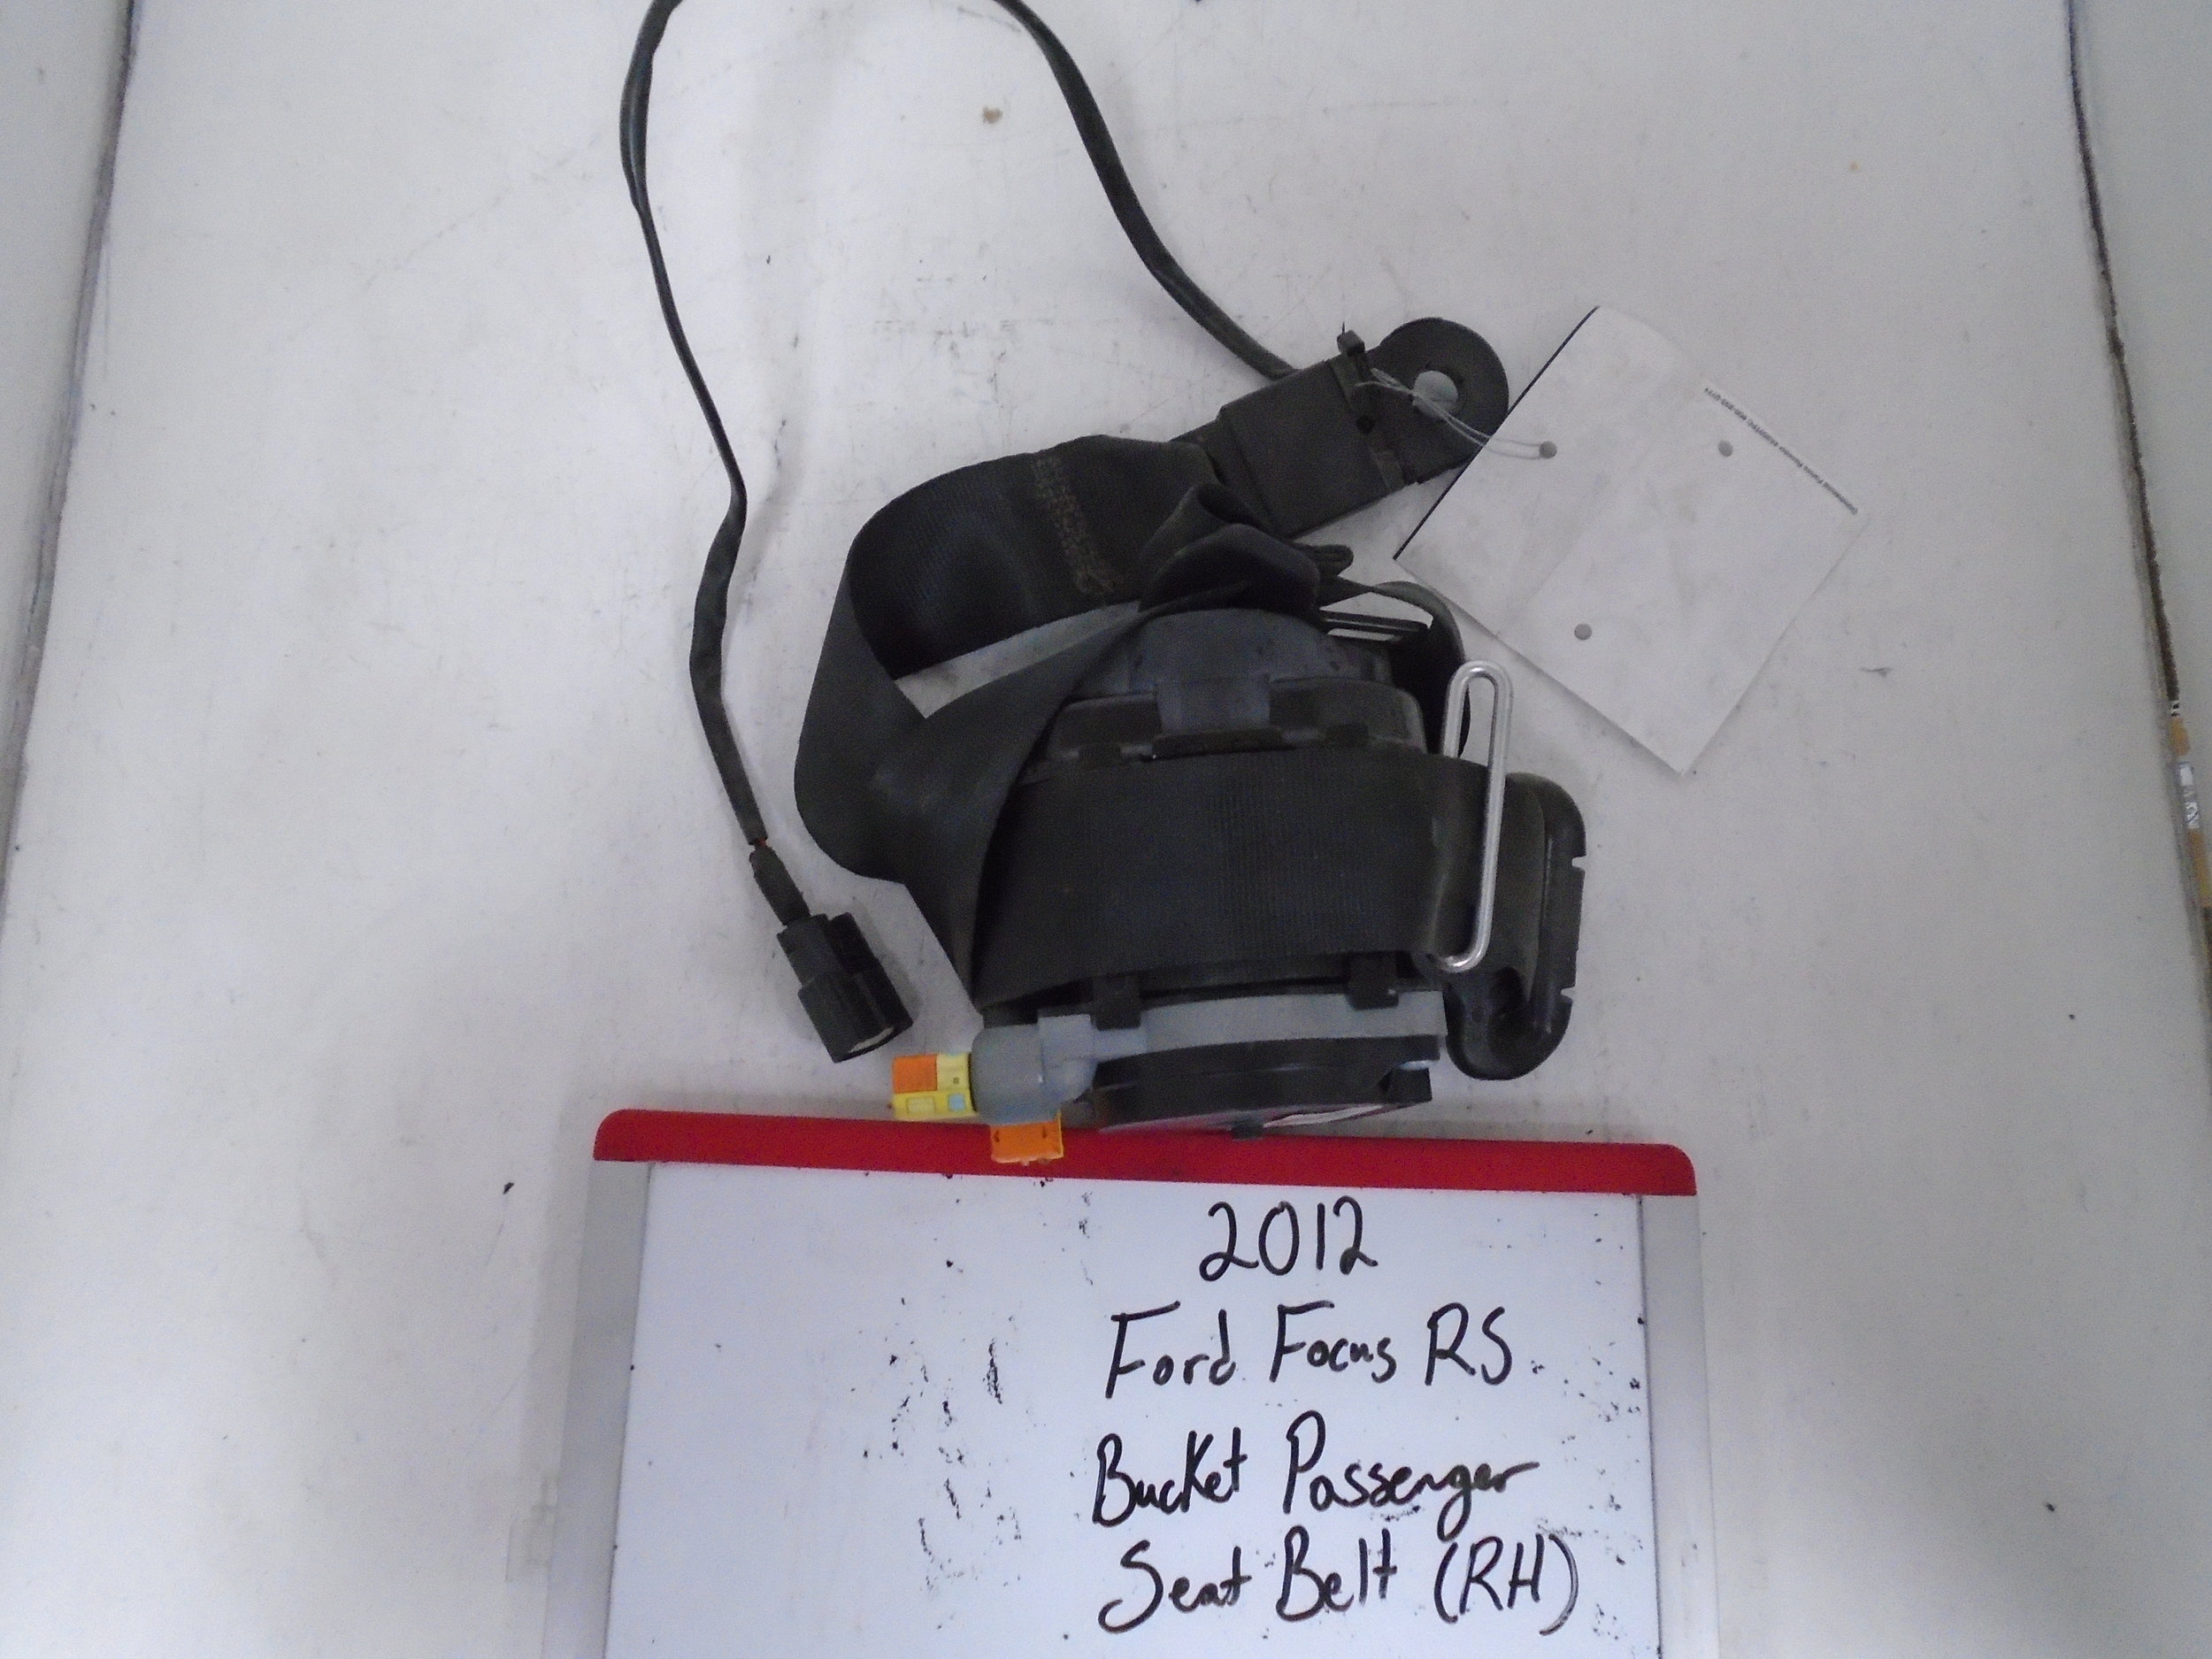 2012 Ford Focus Rs Bucket Passenger Seat Belt Right Airbag Wiring